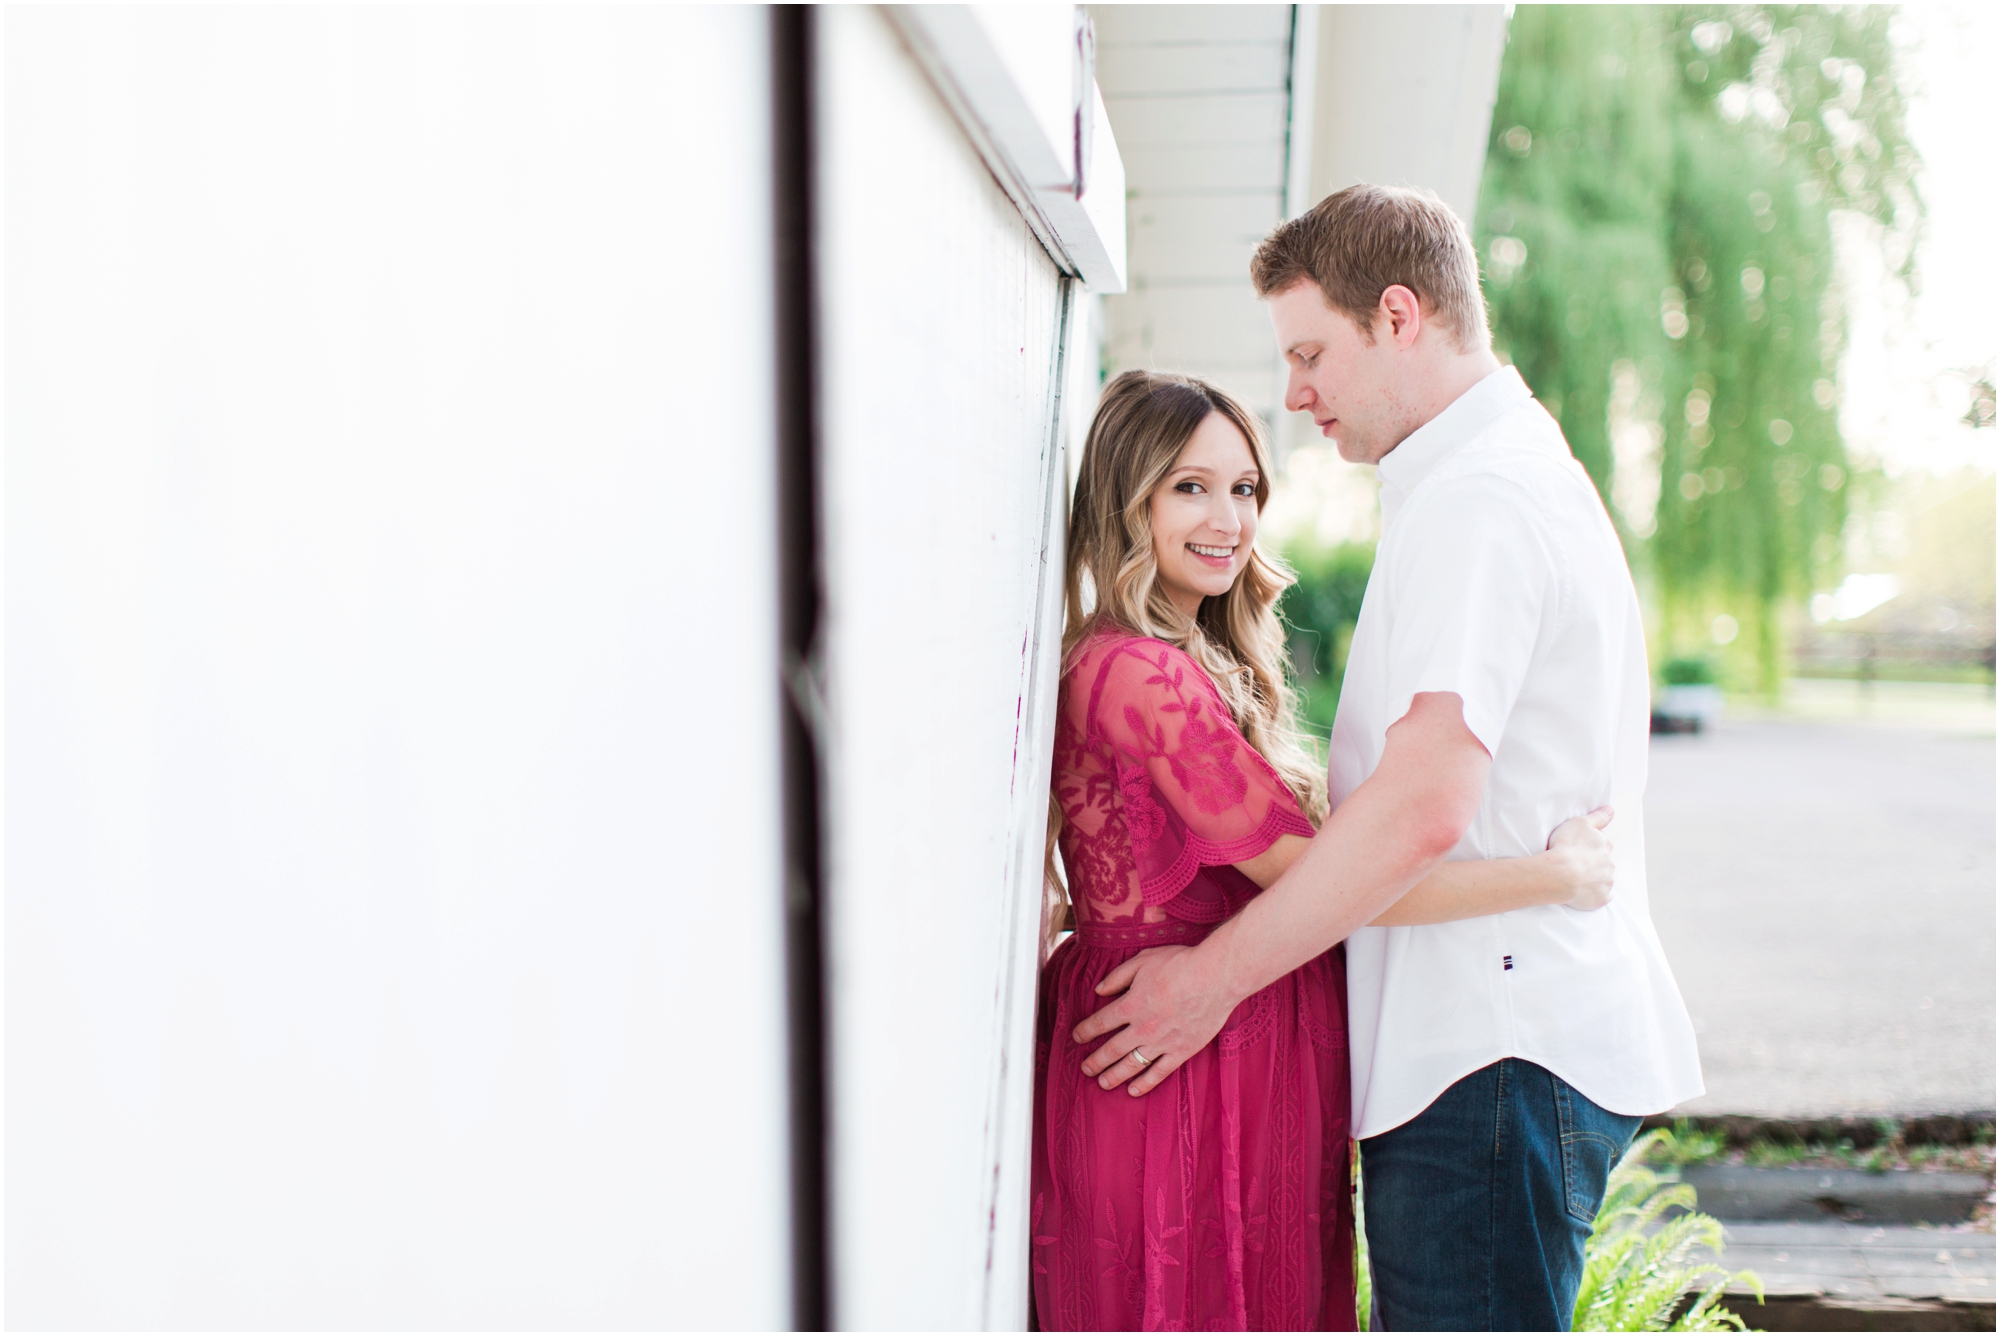 Wild Hearts Farm maternity shoot in Tacoma. Photos by Briana Calderon Photography based in the greater Seattle Tacoma Area._1194.jpg